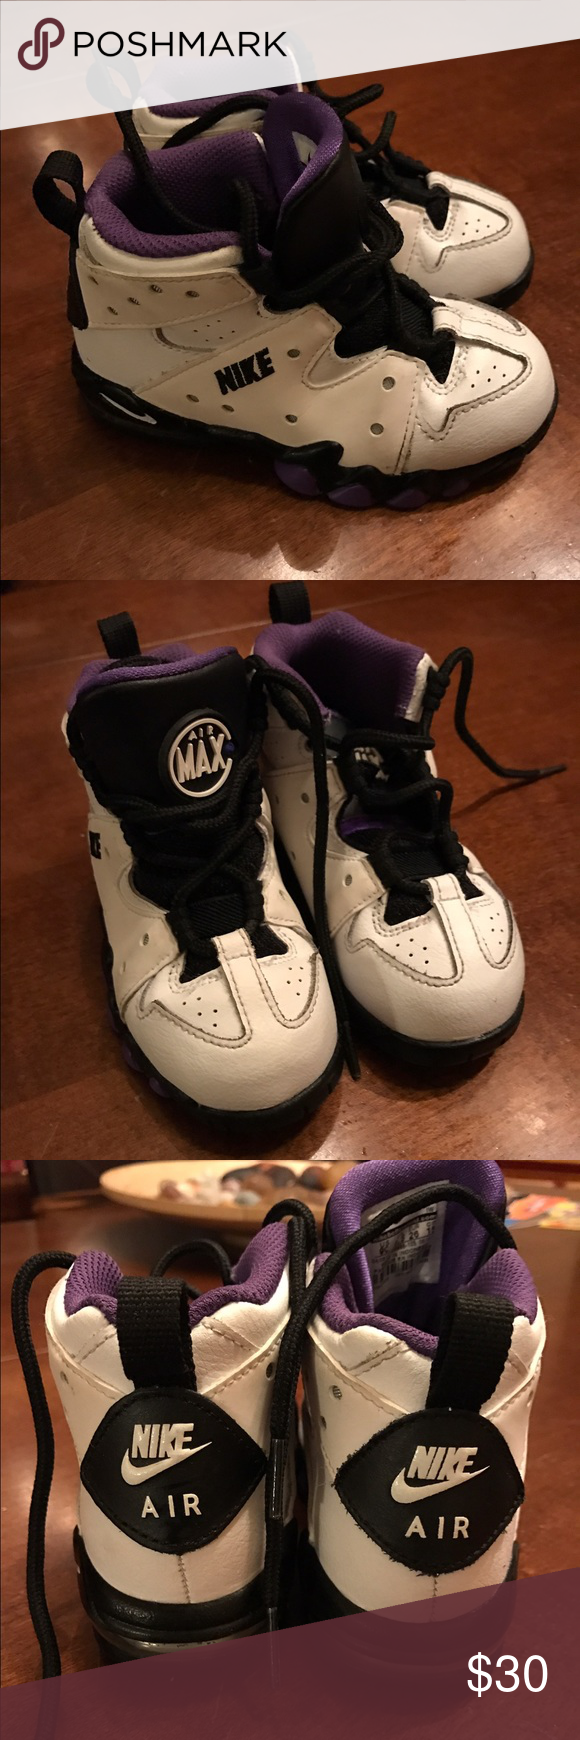 Toddler Charles Barkley 94 s Toddler Charles Barkley Air Max CS 94 high  tops. In great condition! Worn a few times. Nike Shoes Sneakers 9fc83ffcc7